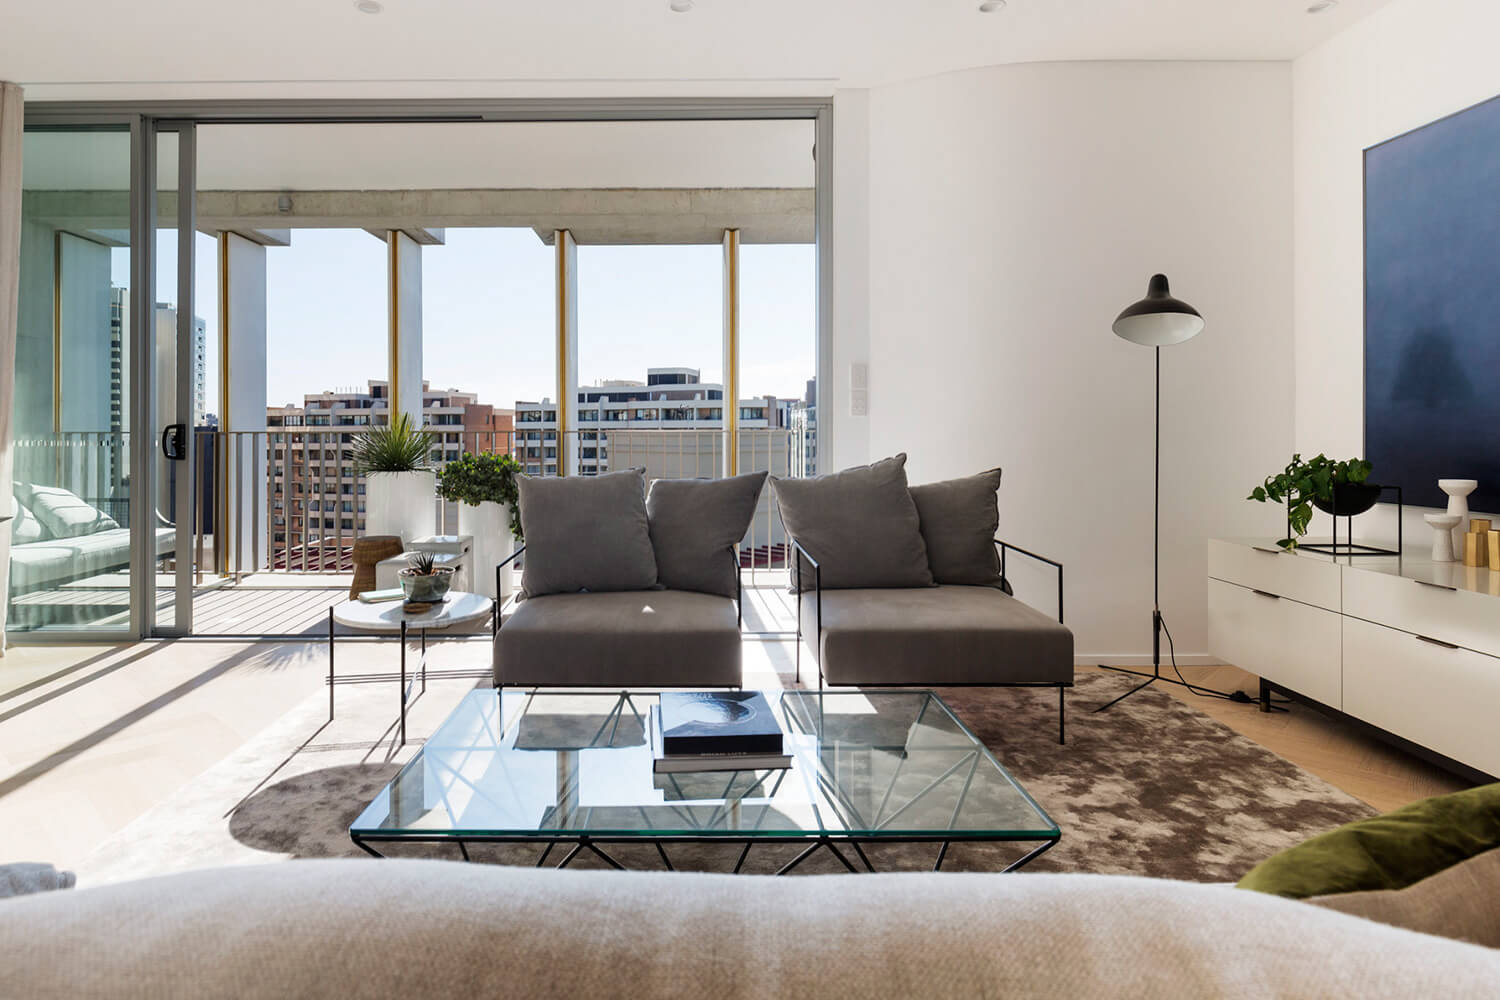 est living open house surry hills roof top apartment bresic whitney.16